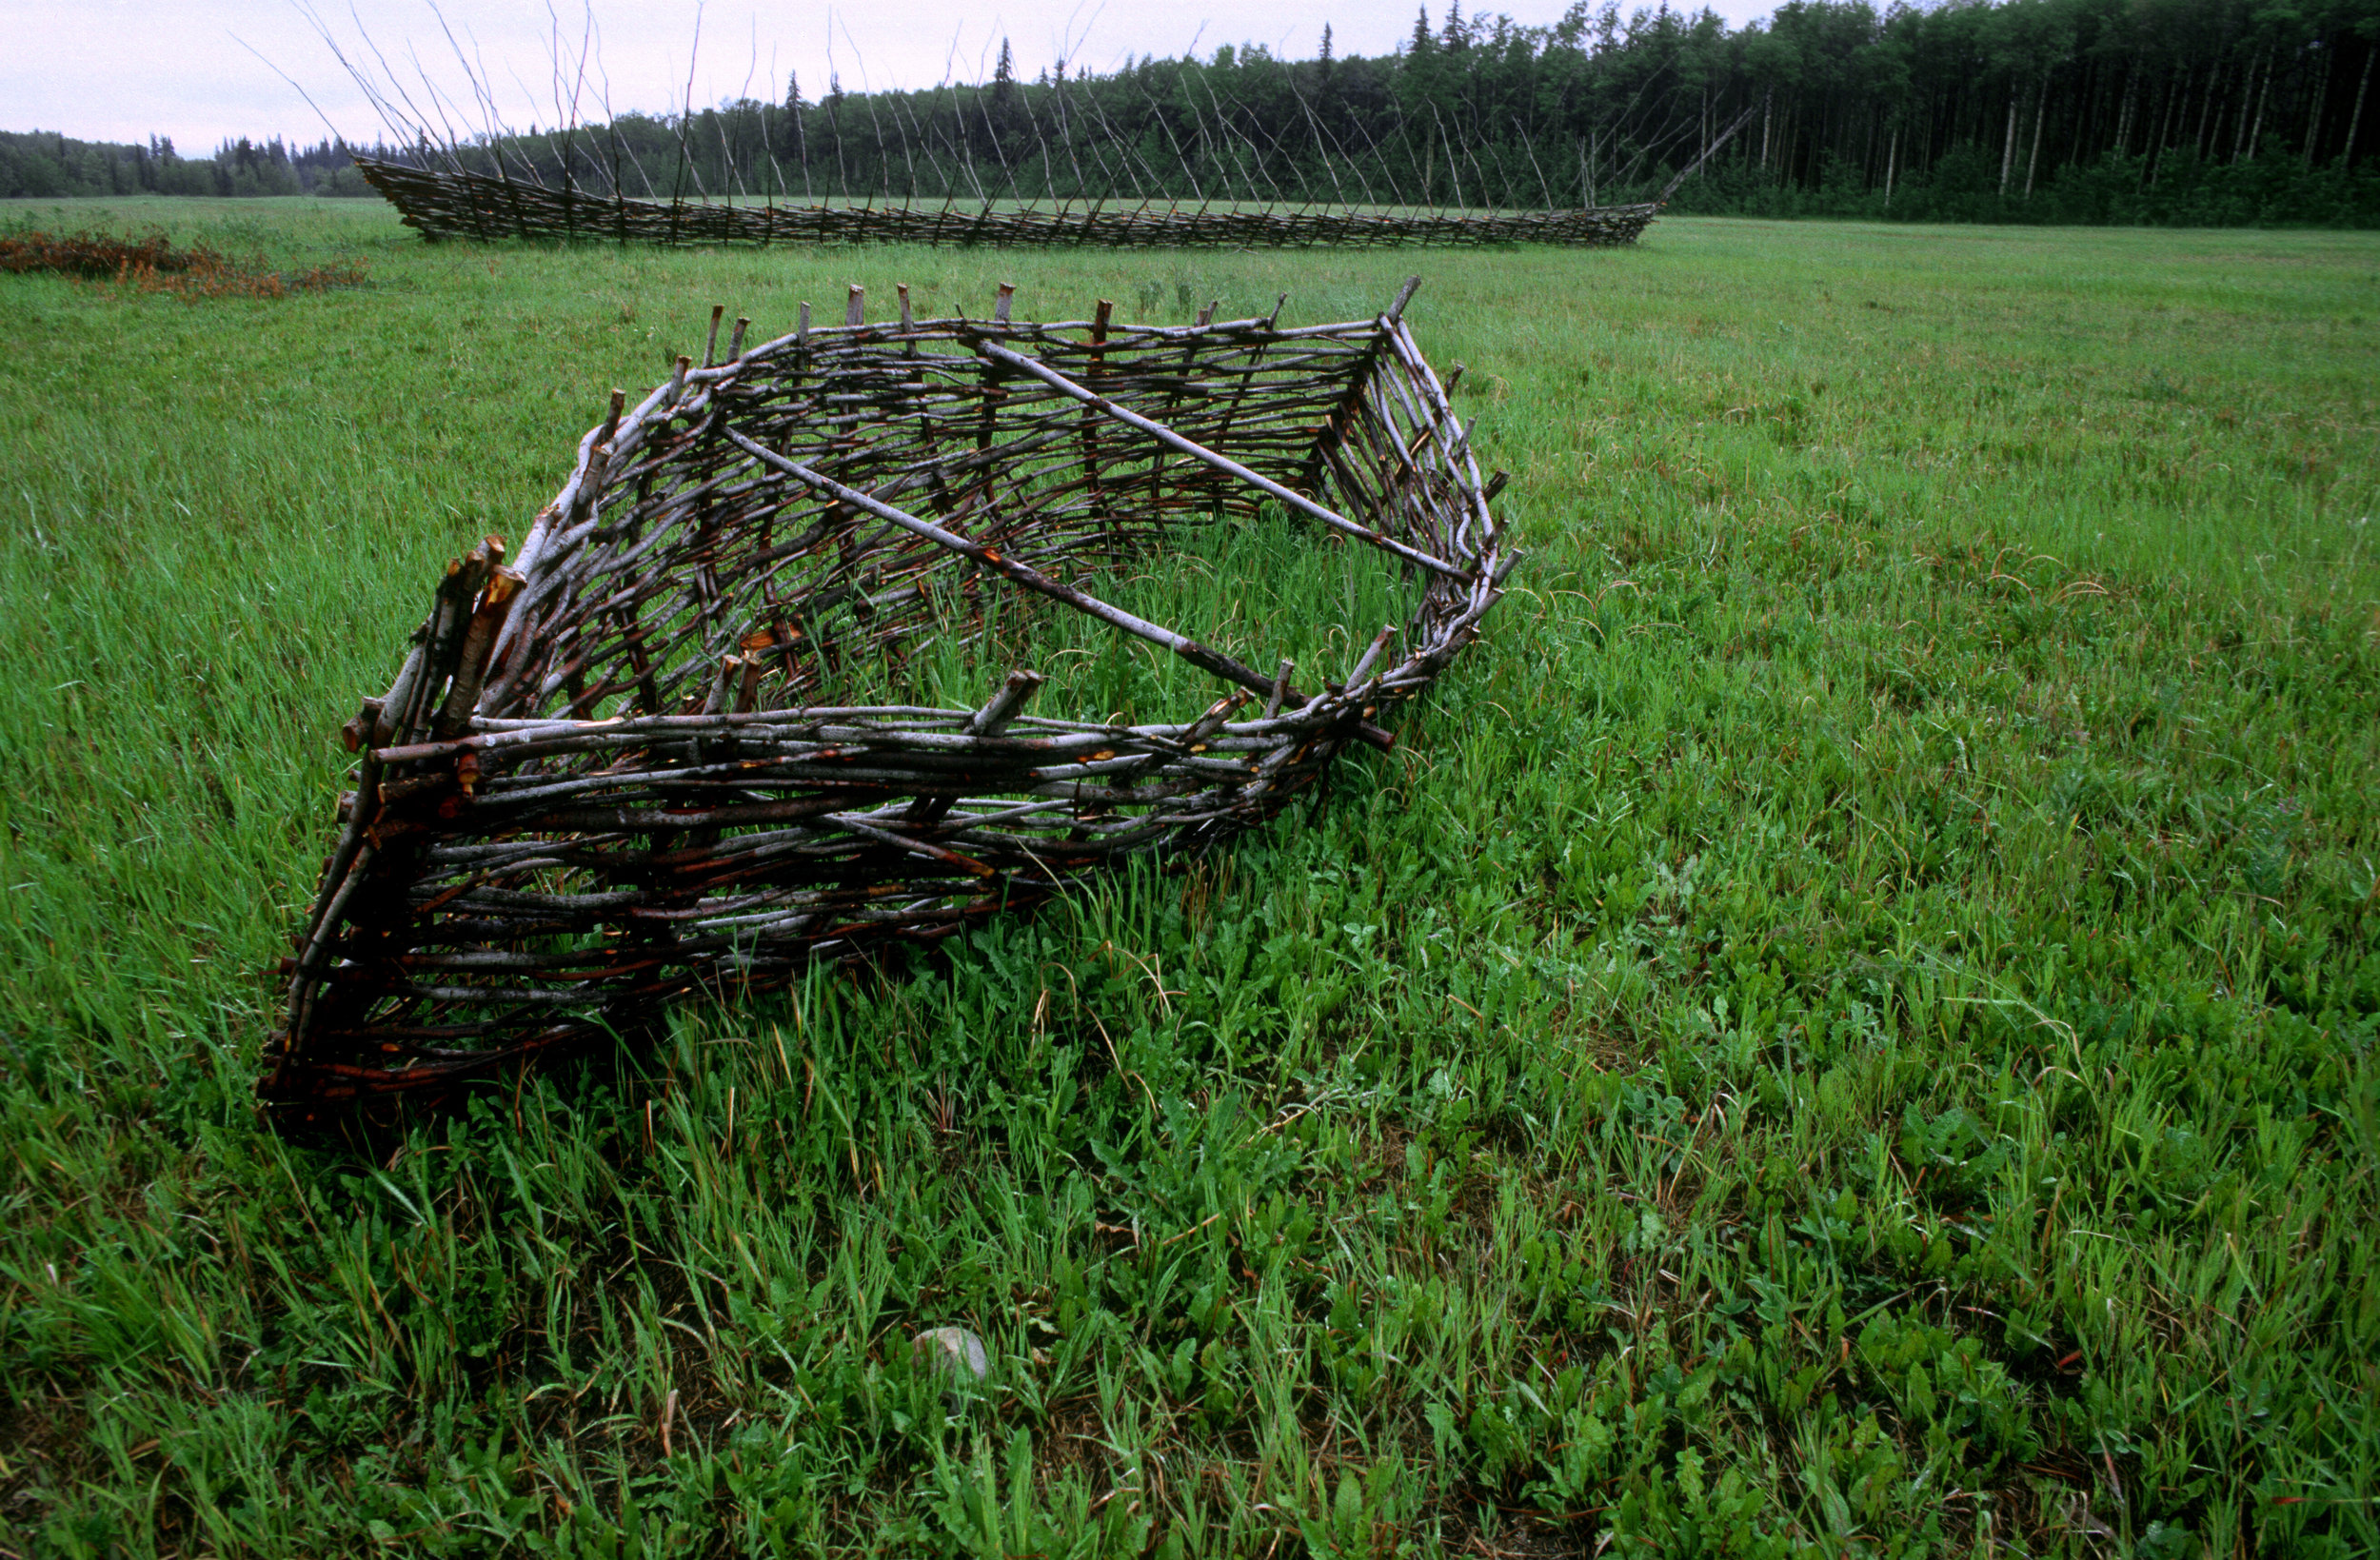 Peter von Tiesenhausen,  Ship  (background). Woven willow, 110' x 20' x 16'.  Vessel  (foreground). Woven willow, 18' x 3' x 6'. Artist's property in Demmit, Alberta, 1993. Photograph by Randy Adams